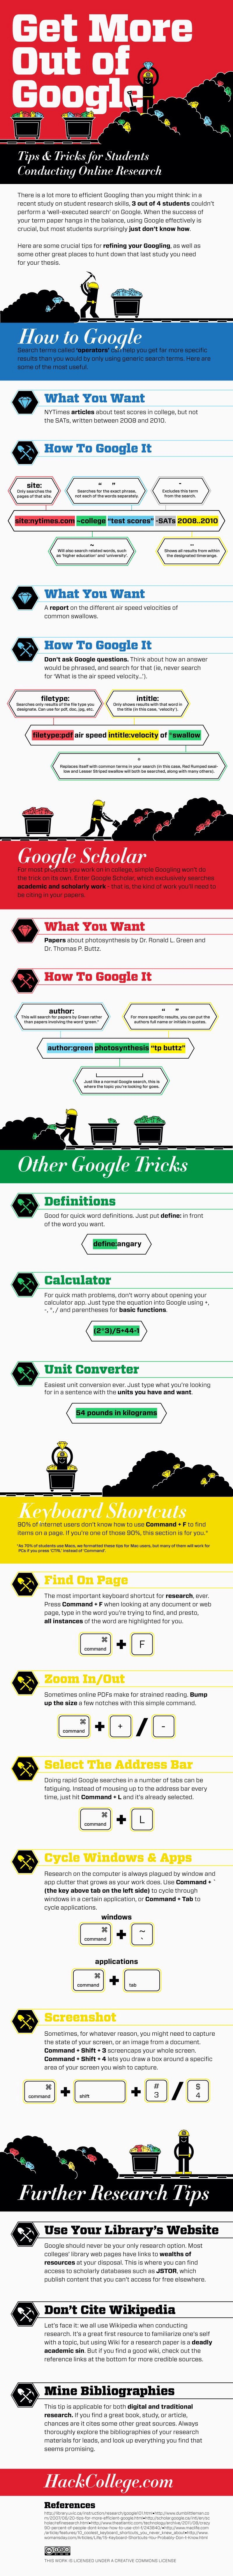 A useful infographic on getting the EXACT information you're searching for through Google - fantastic for college students and just research in general!